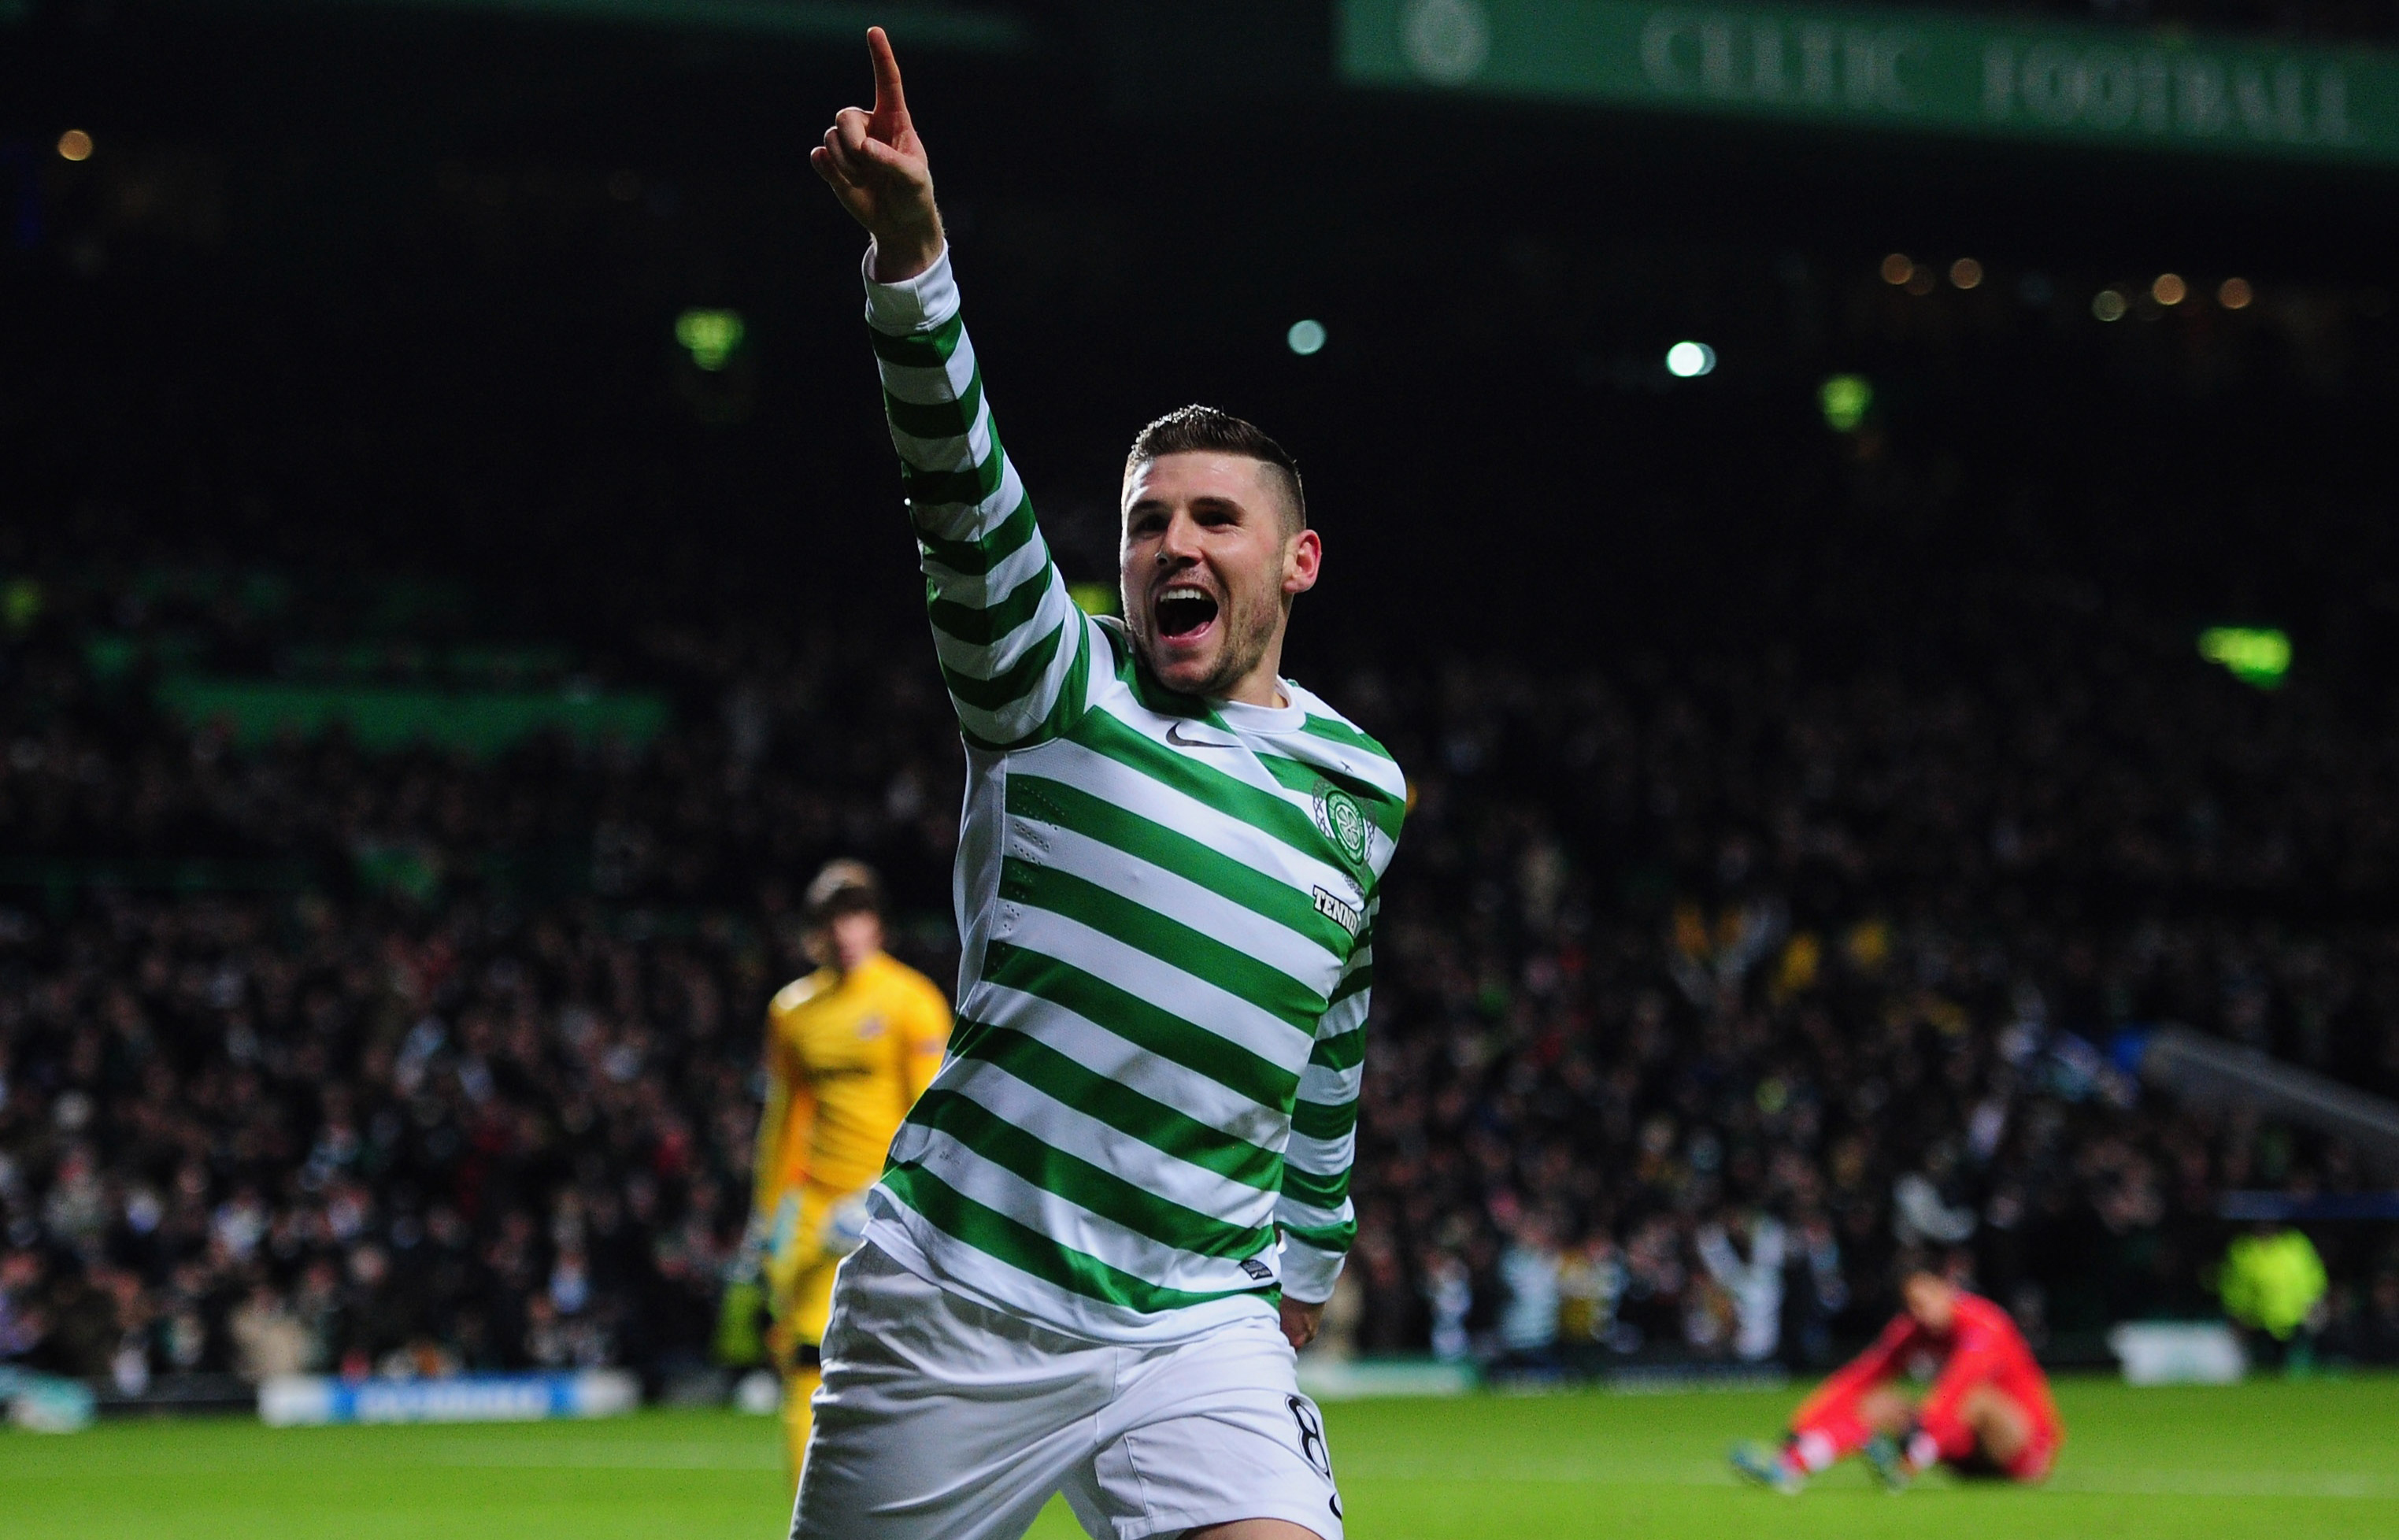 Super Hooper: Gary Hooper fires hope Celtic's opener with a delicious finish (Picture: Getty)